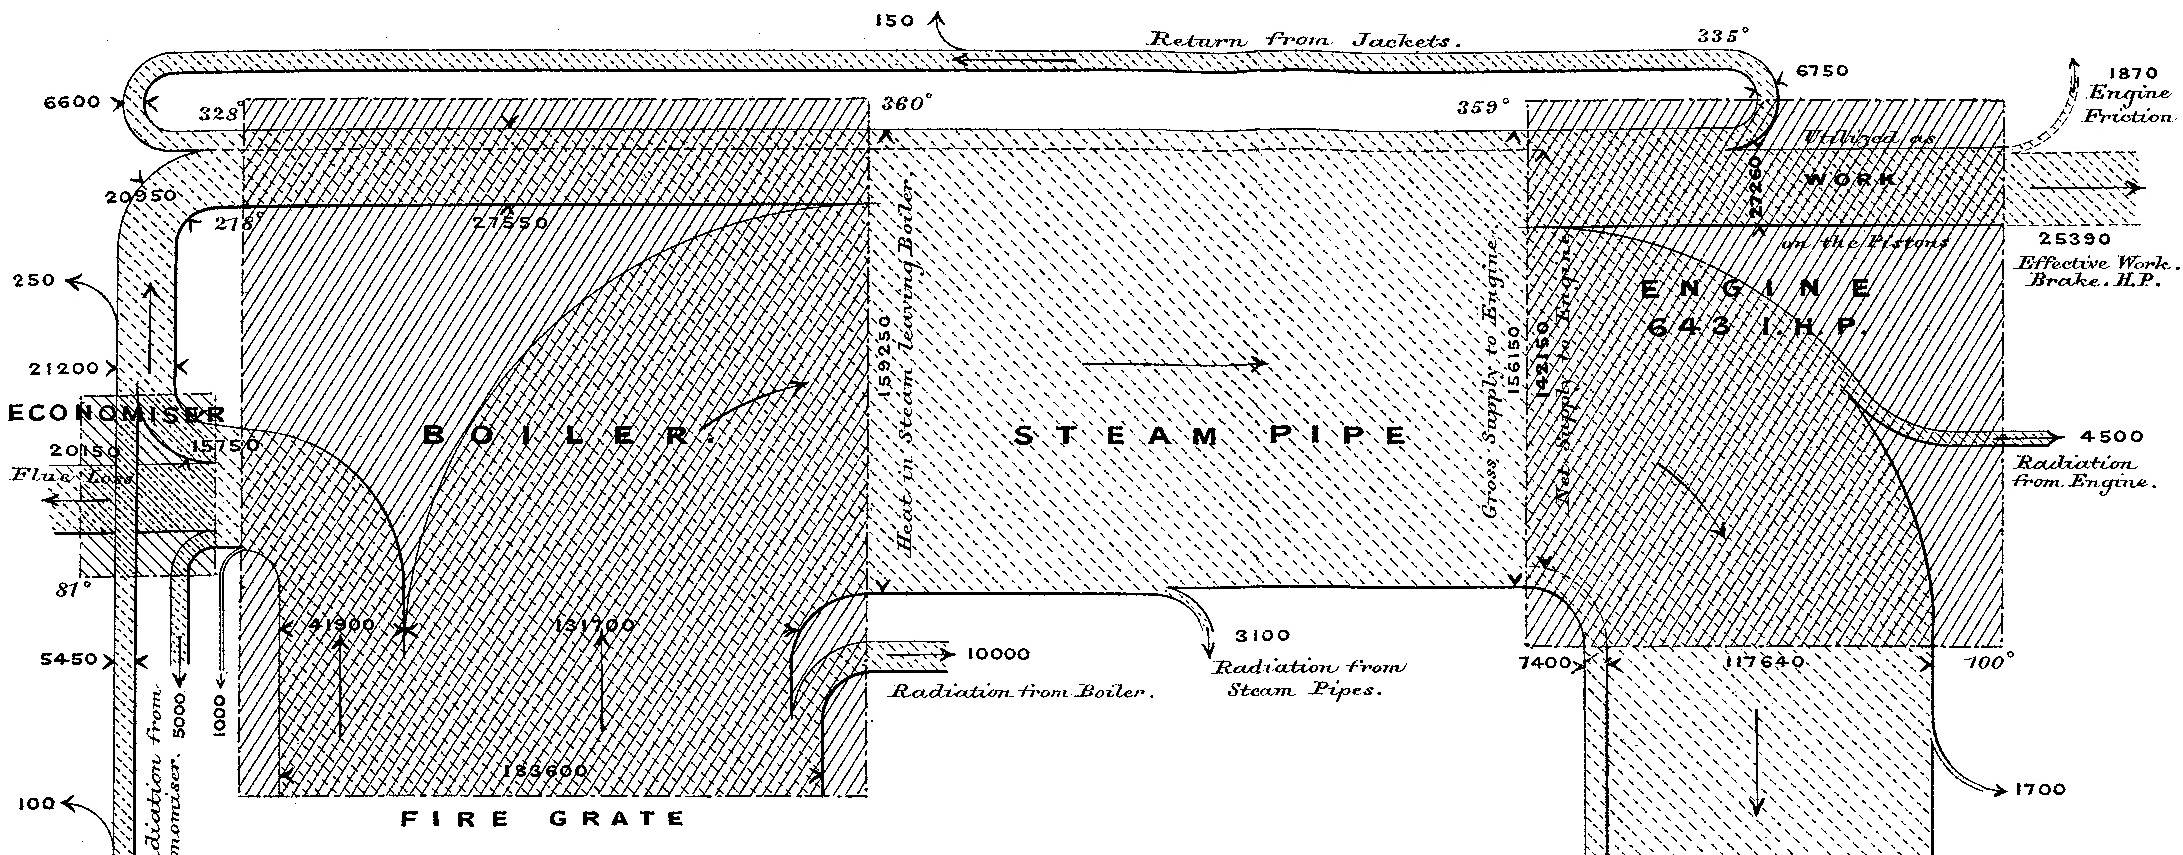 The first Sankey Diagram  made to visualize the Thermal Efficiency of Steam Engines by Matthew H.P.R. Sankey in 1898